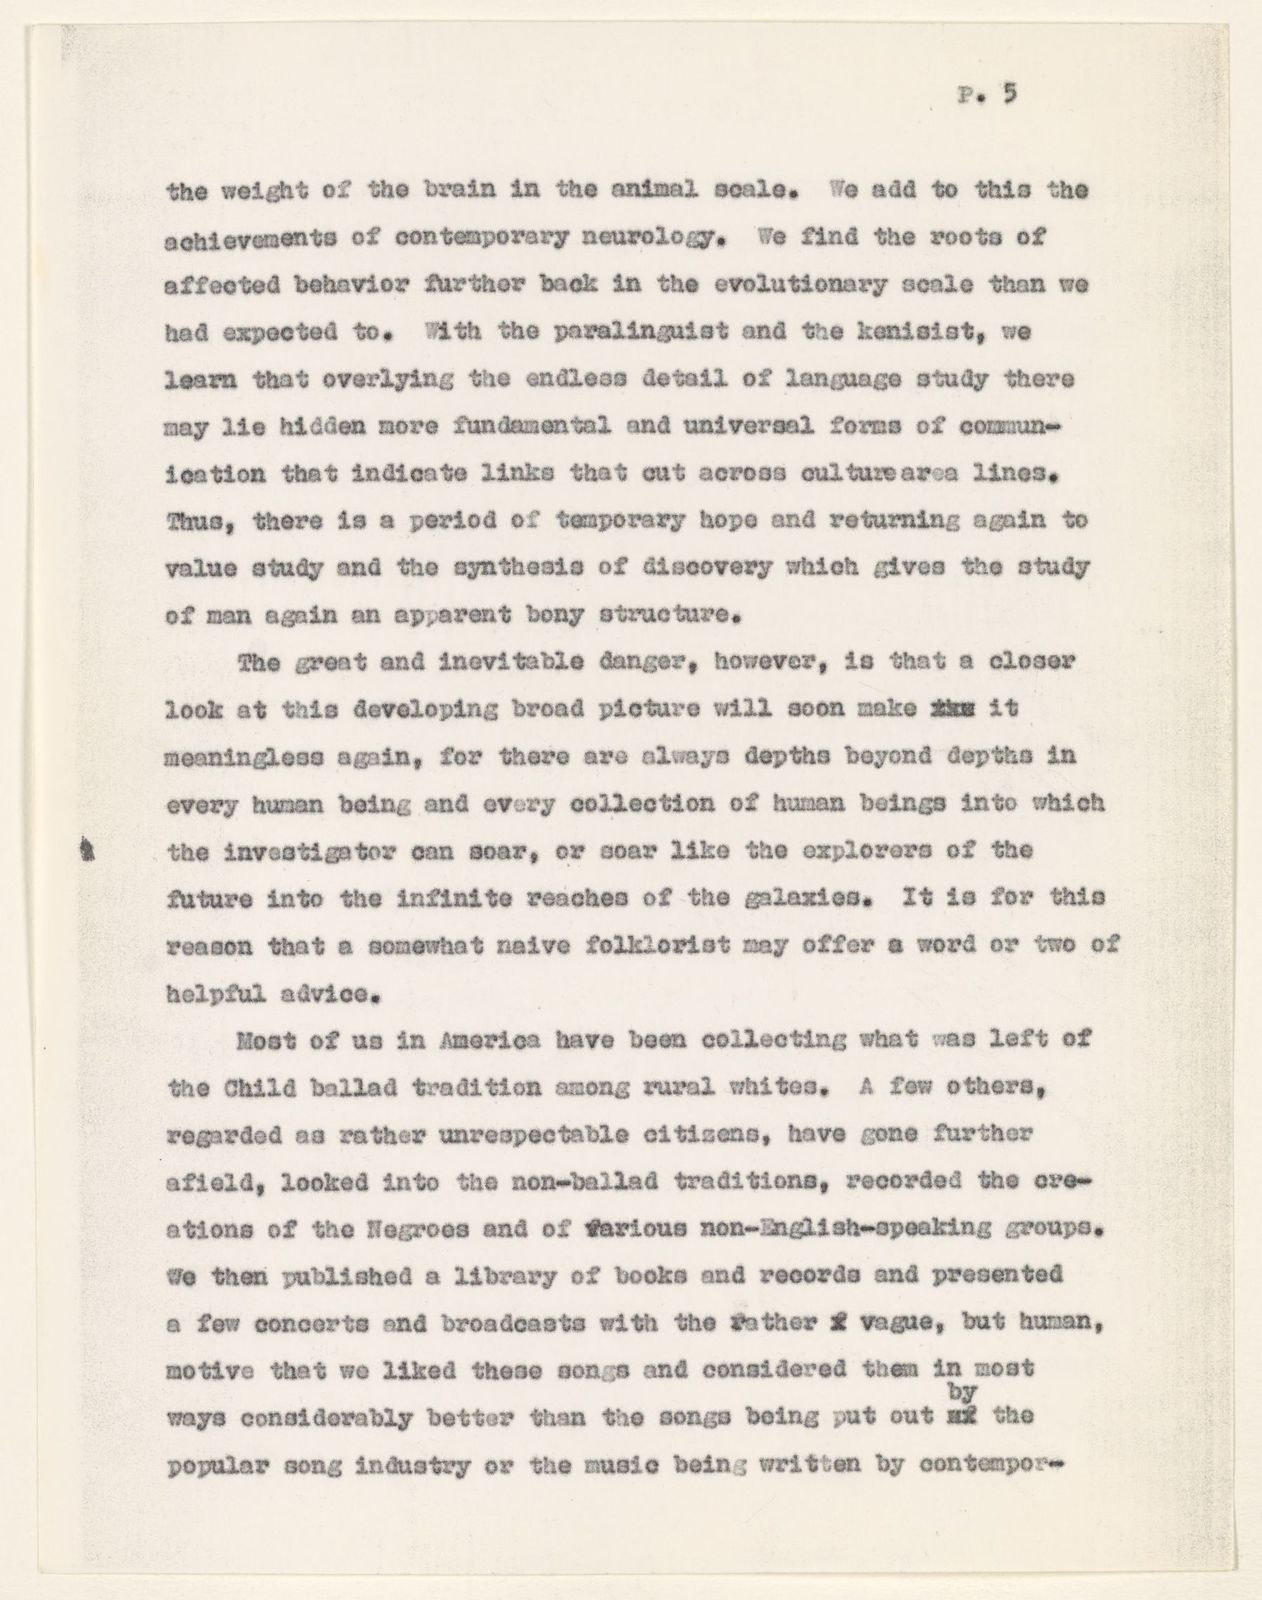 Alan Lomax Collection, Manuscripts, A Folklorist Looks at Cultural Anthropology